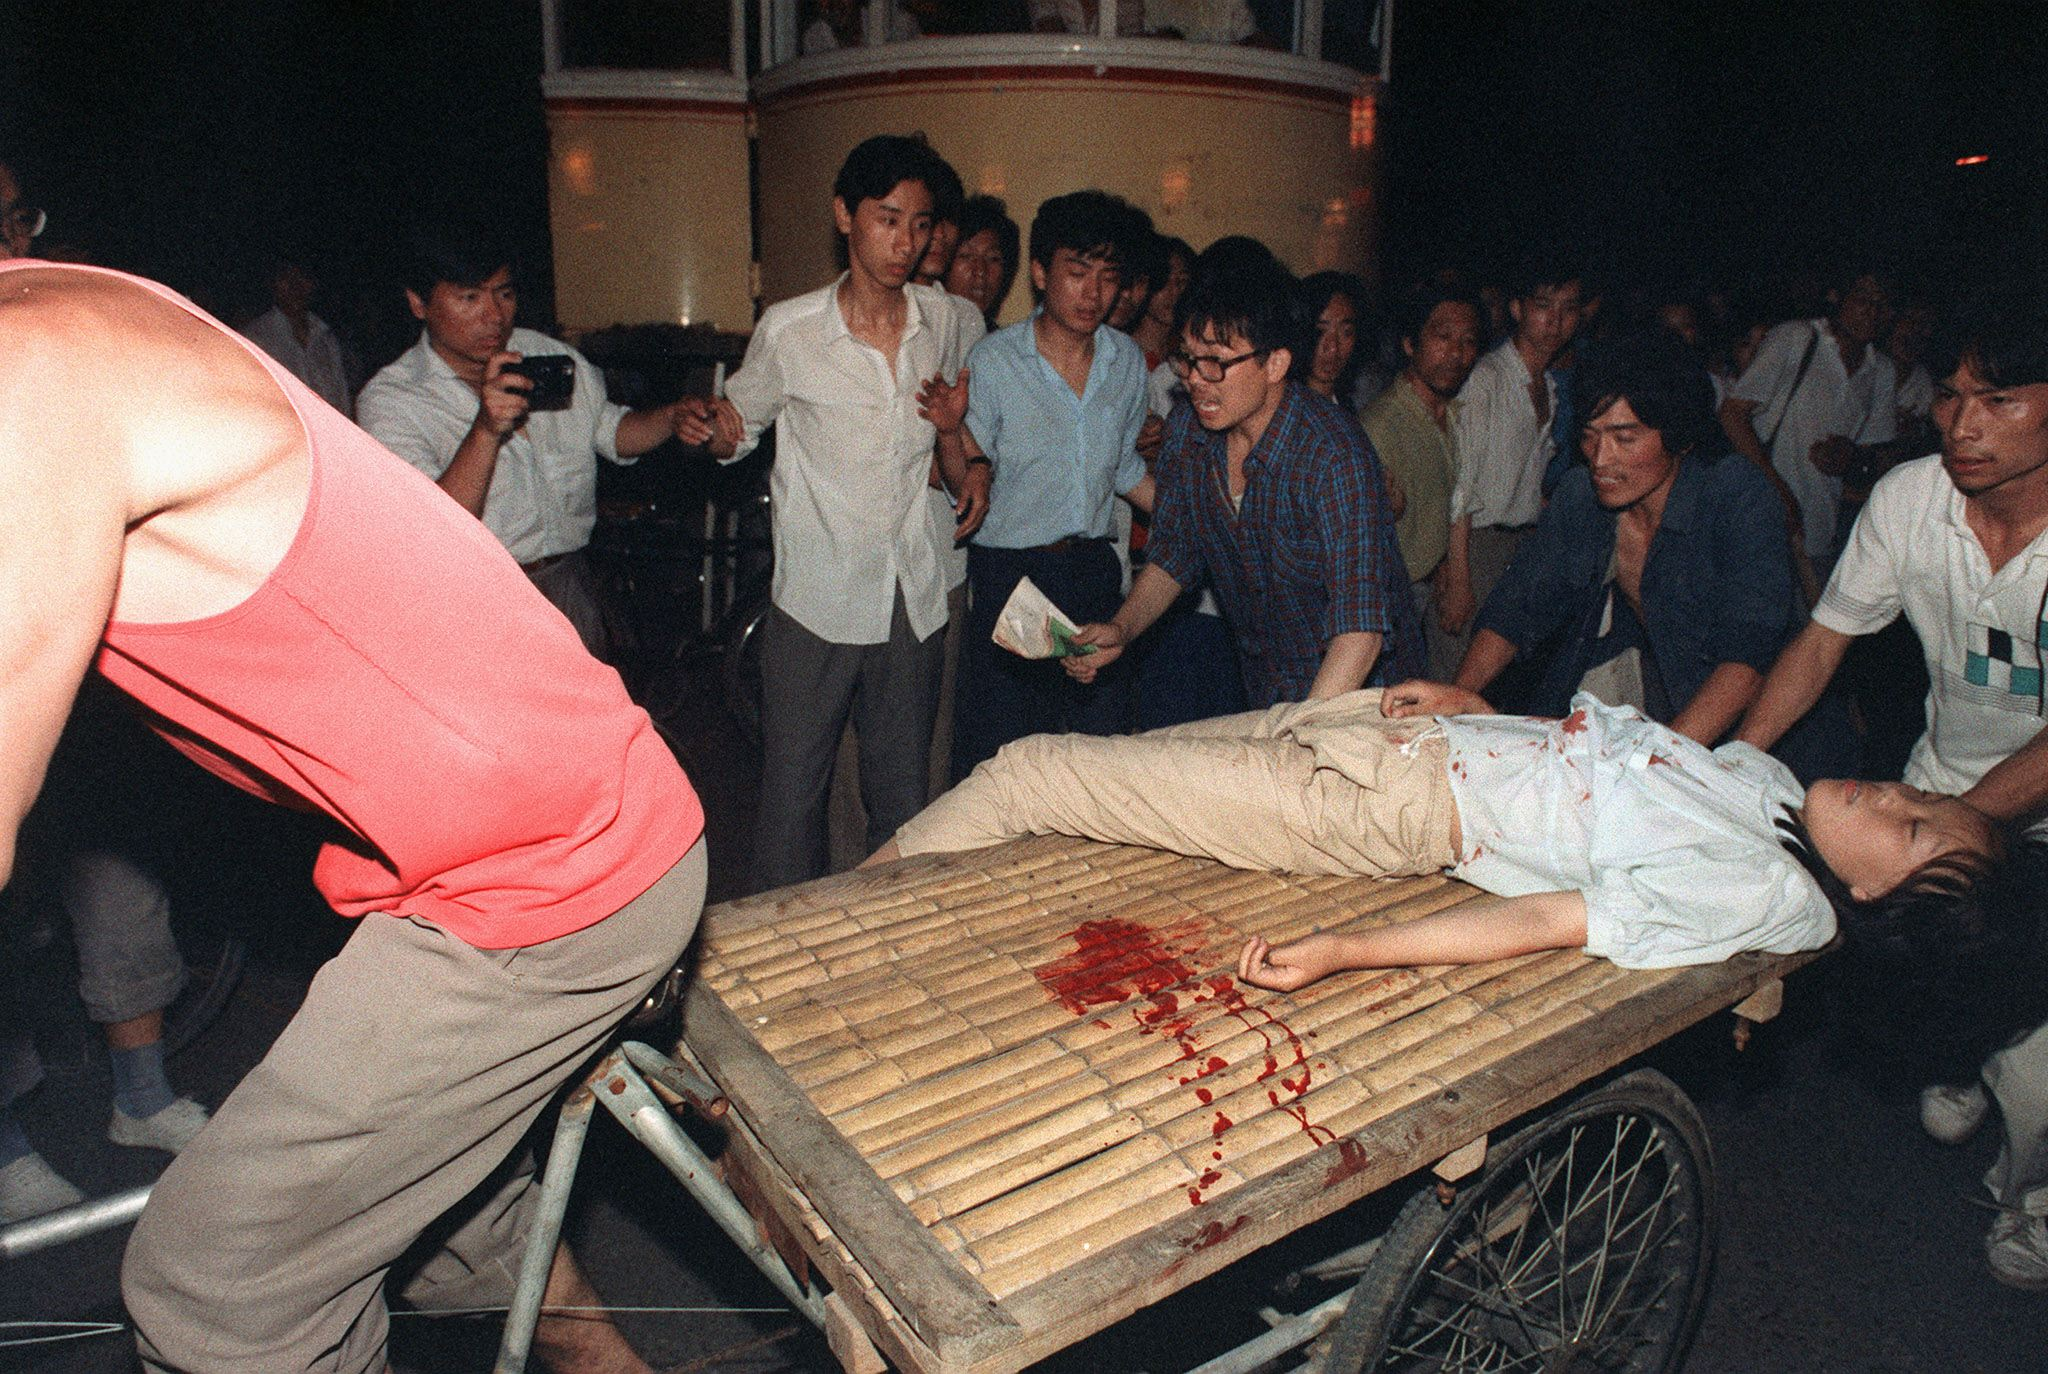 A girl wounded during the clash between the army and students 04 June 1989 near Tiananmen Square is carried out by a cart (MANUEL CENETA/AFP/Getty Images)